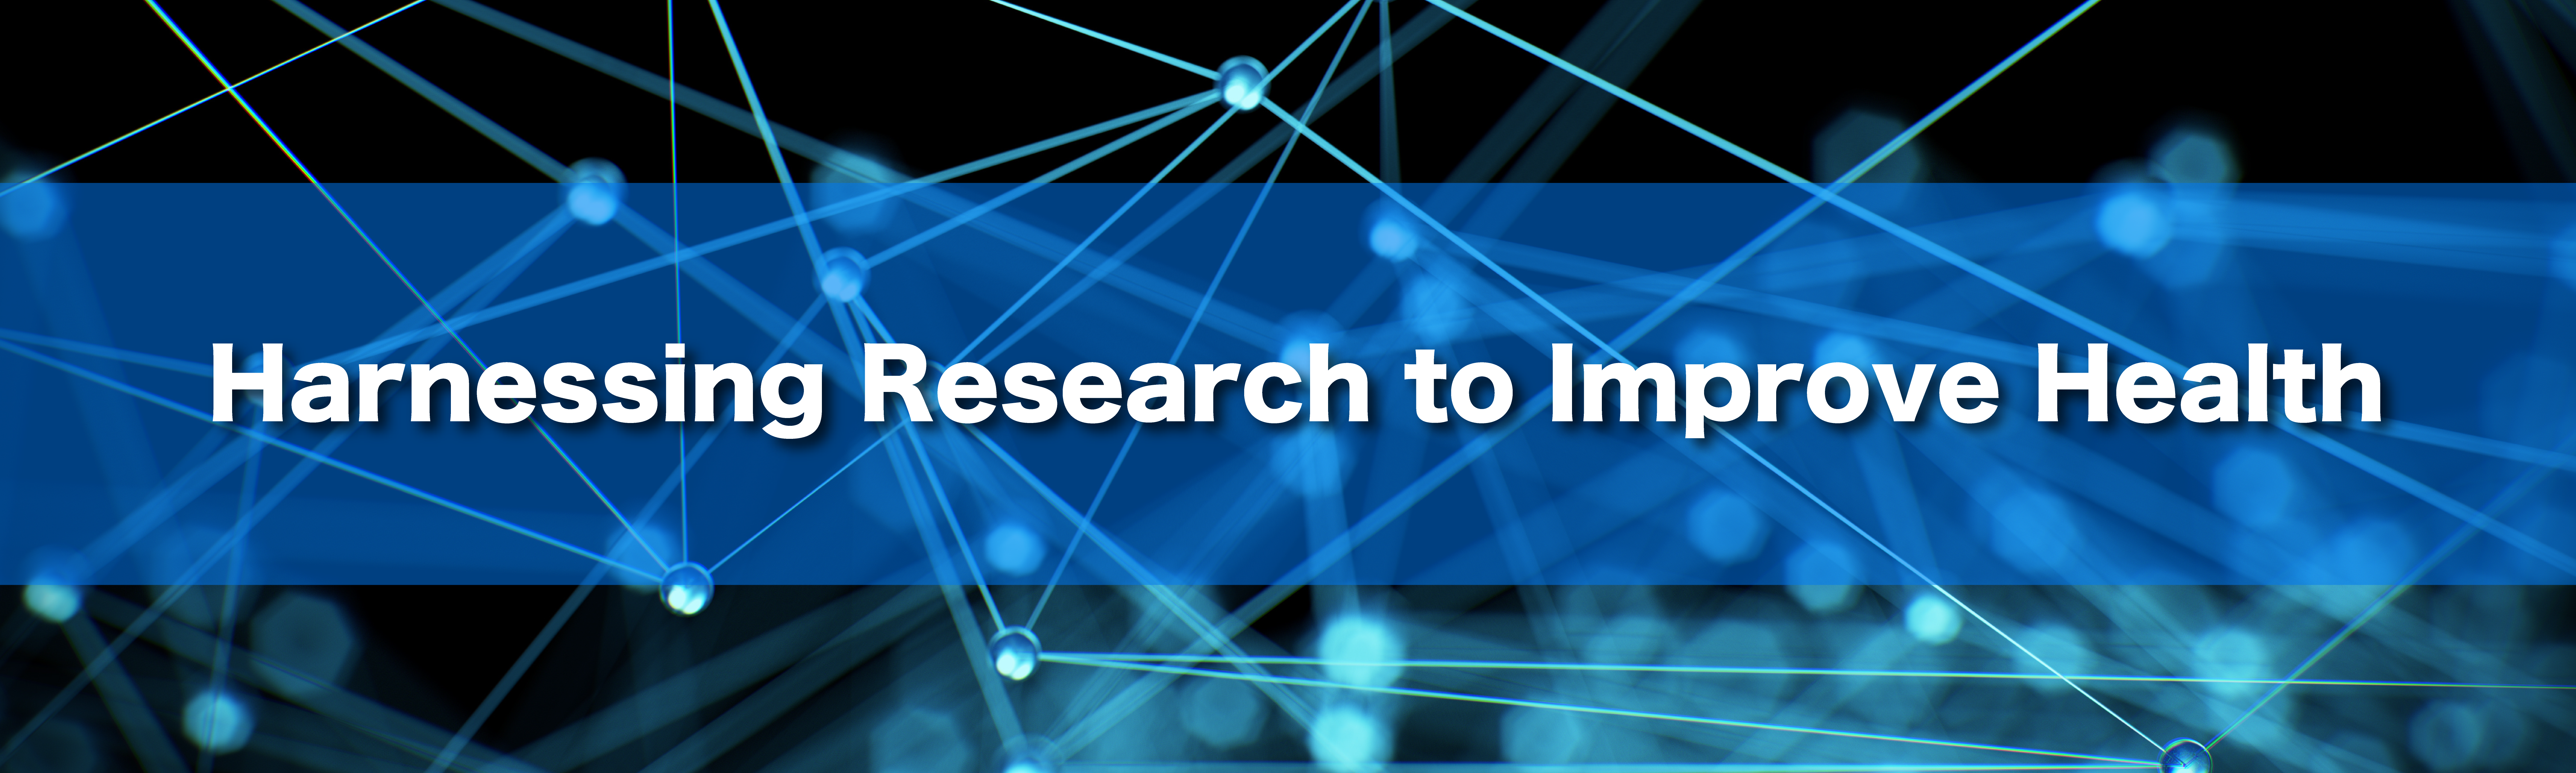 Harnessing Research to Improve Health